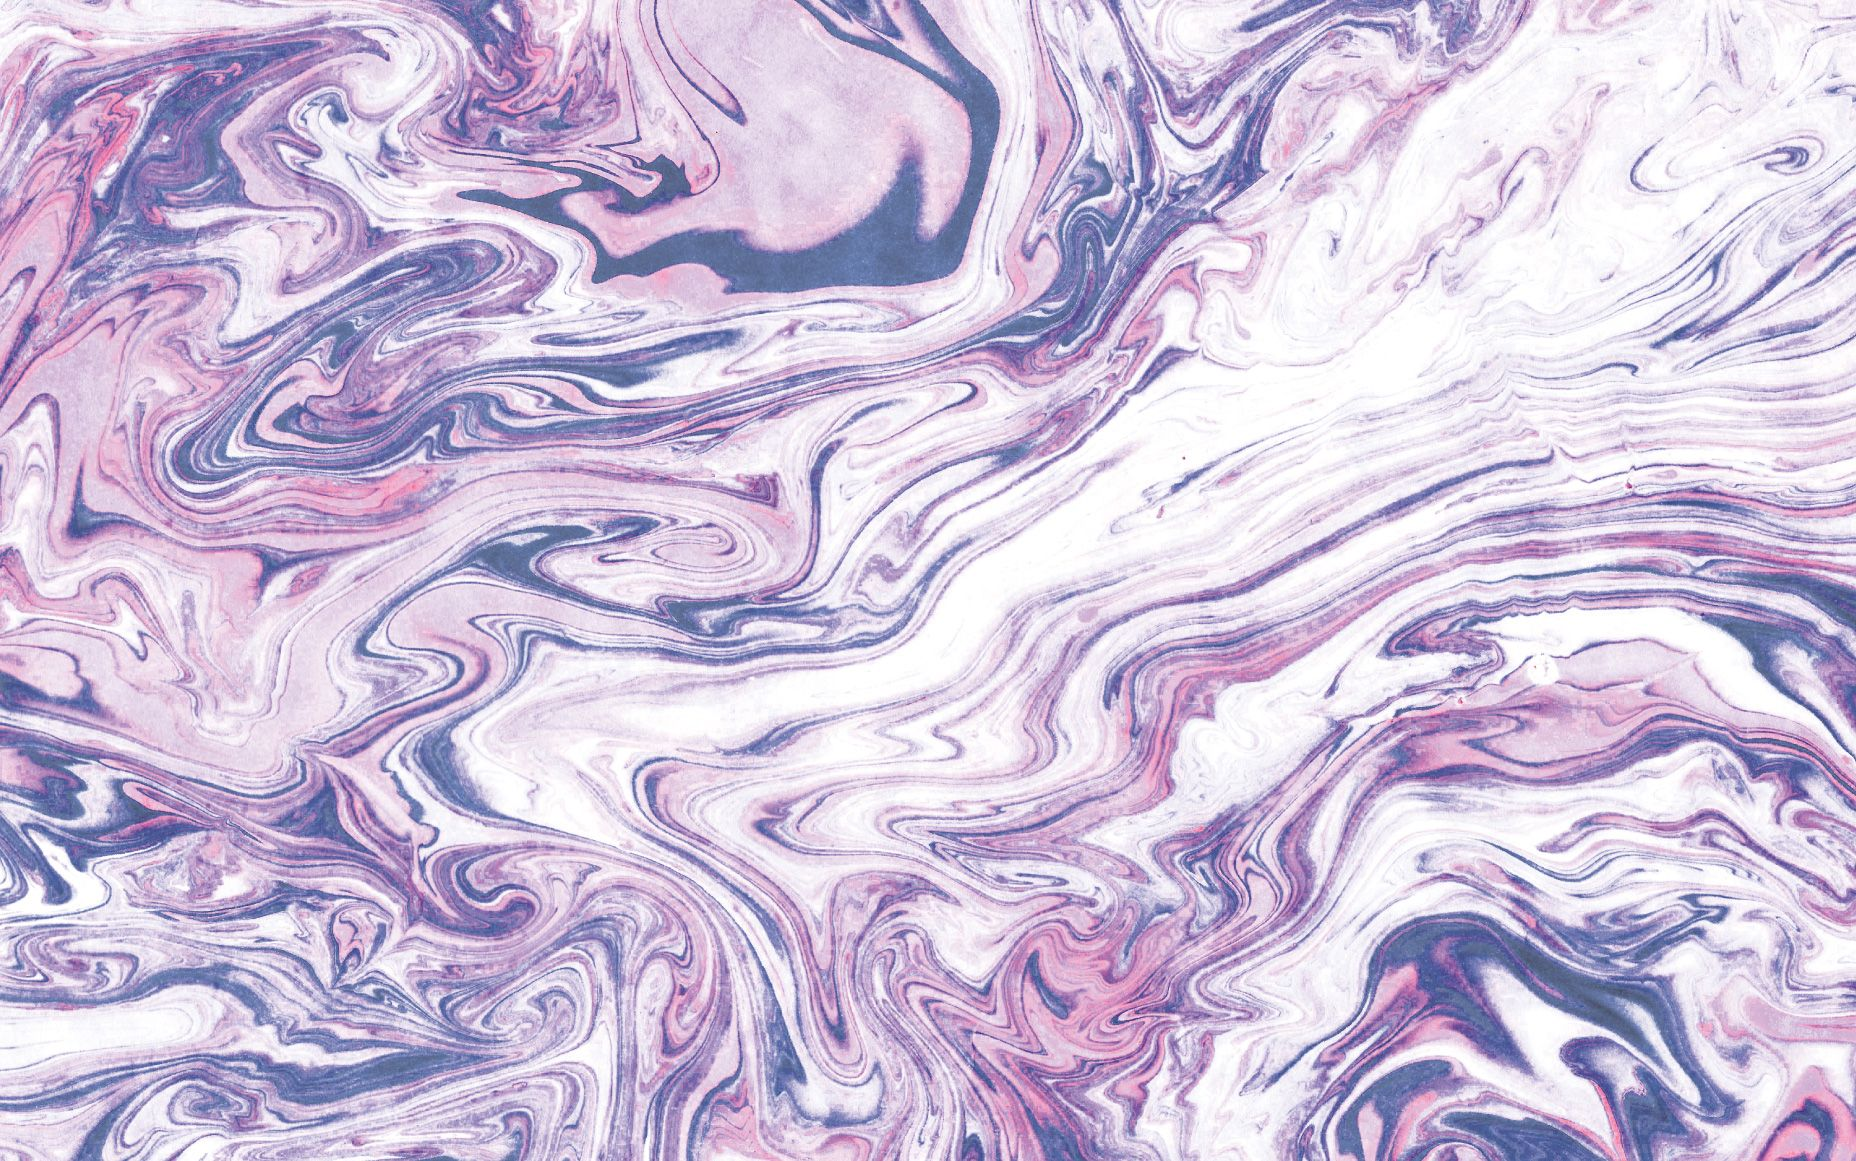 Purple Marble Desktop Jpg 1 856 1 161 Pixels Marble Desktop Wallpaper Desktop Wallpaper Cute Computer Backgrounds